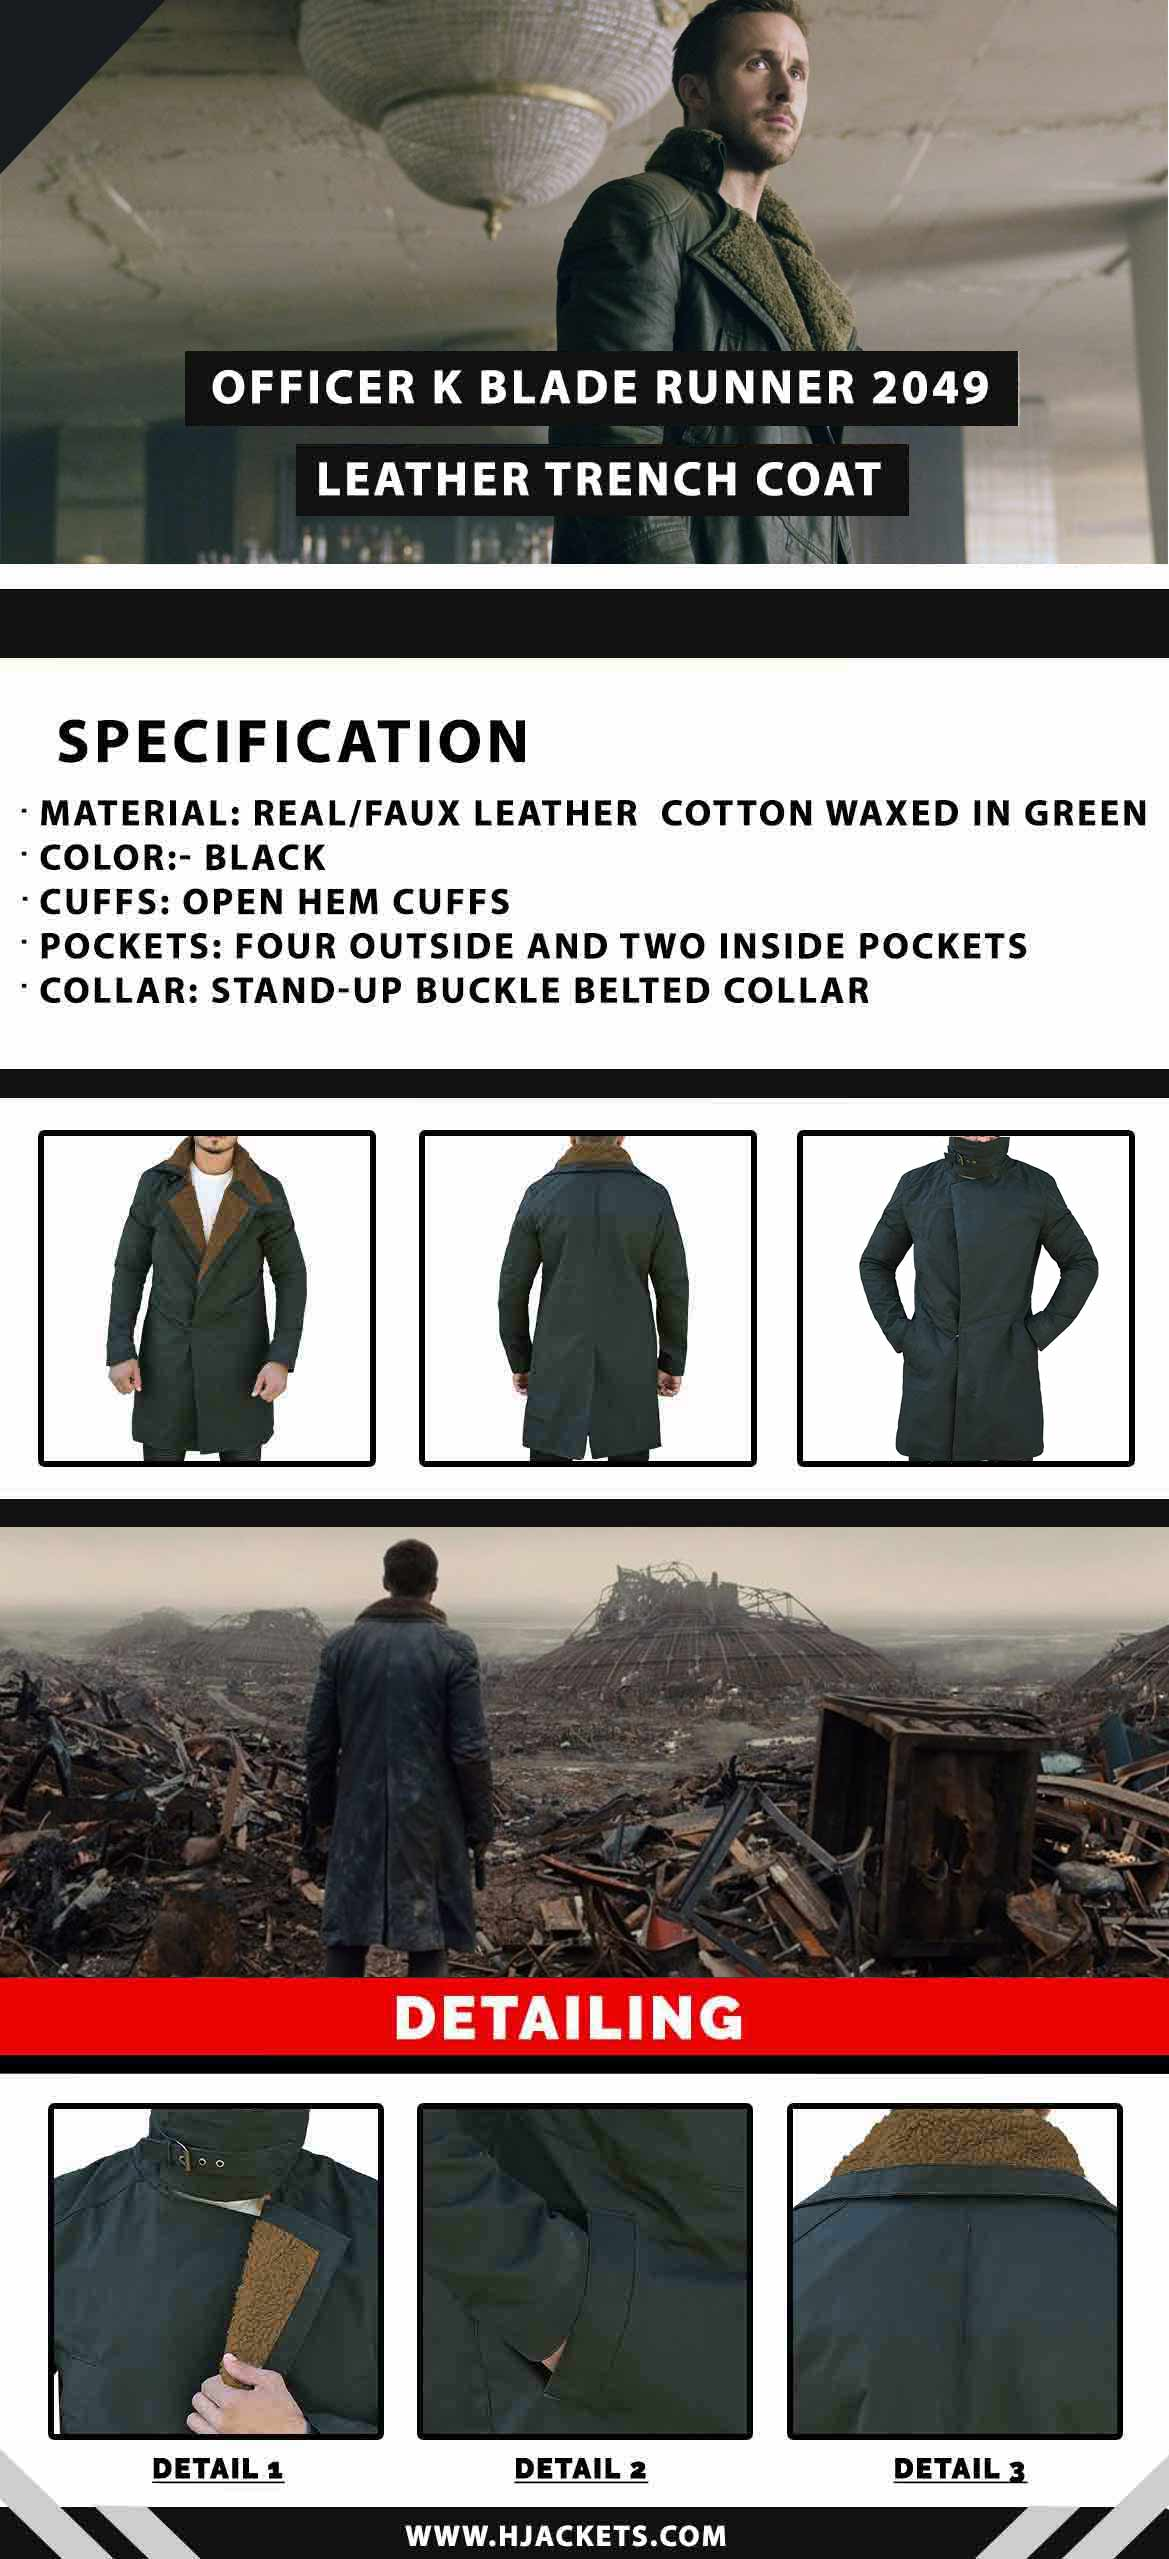 Officer K Blade Runner 2049 Trench Coat Infographic